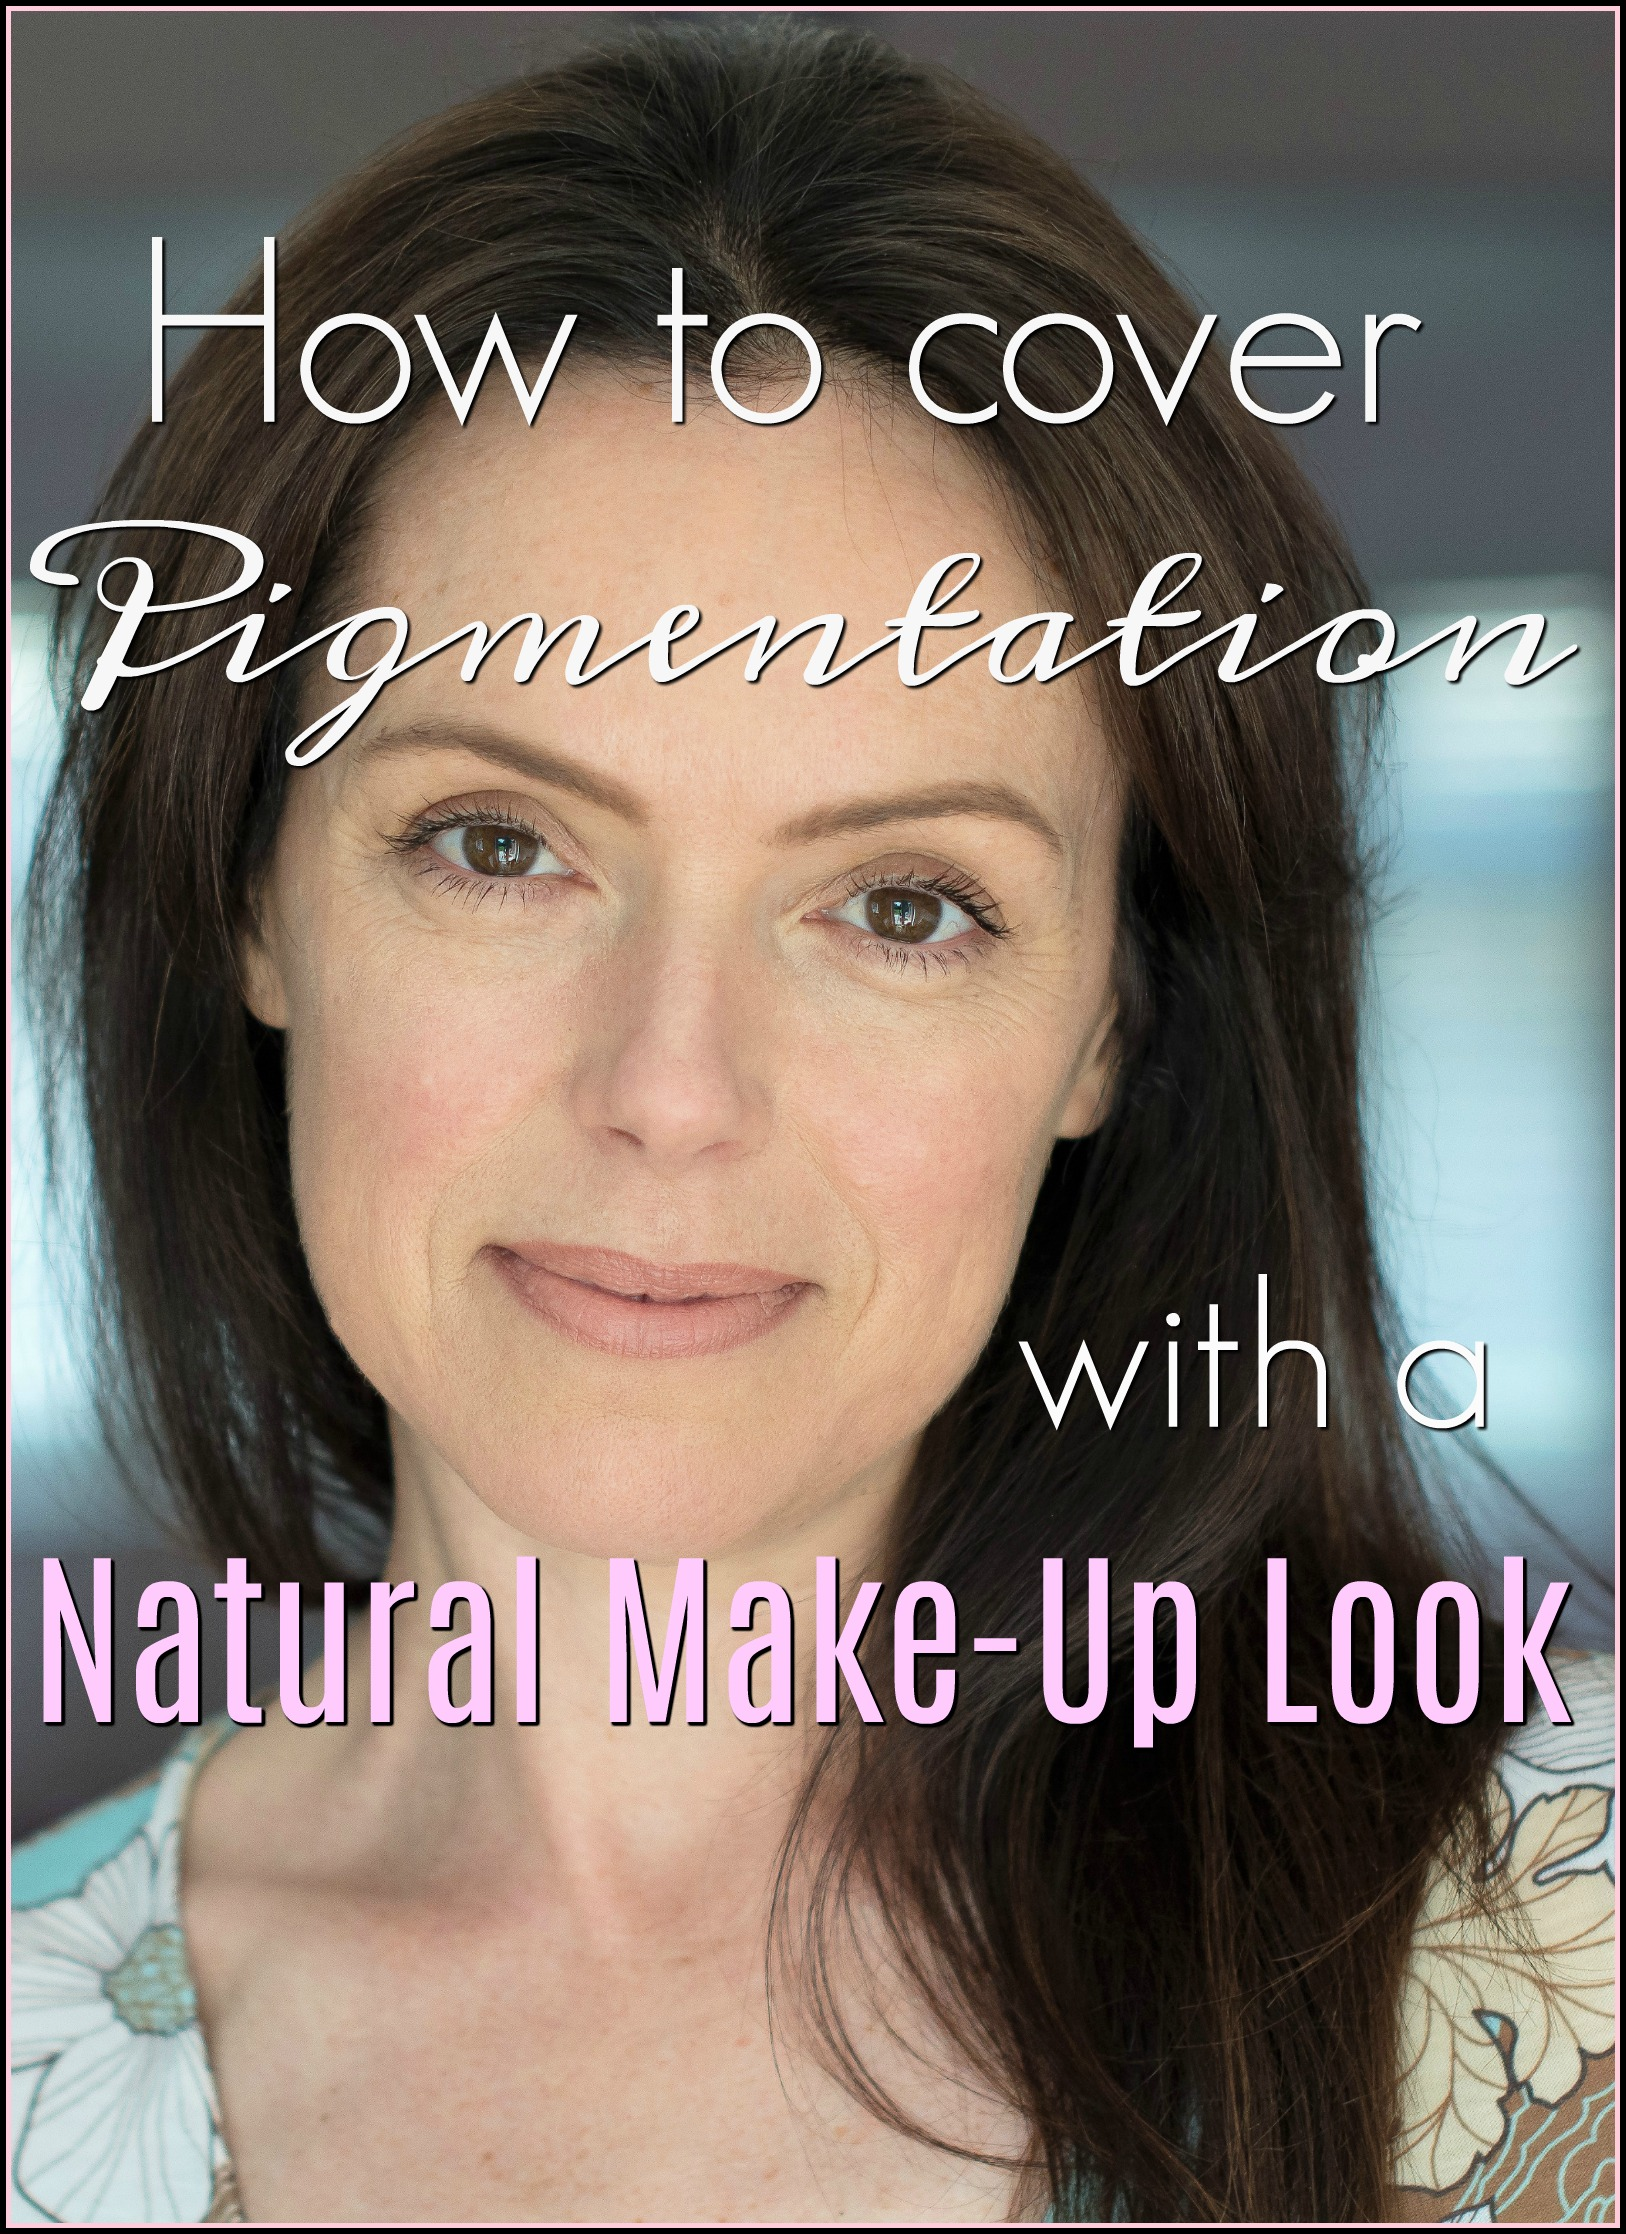 how to cover pigmentation with a natural make up look